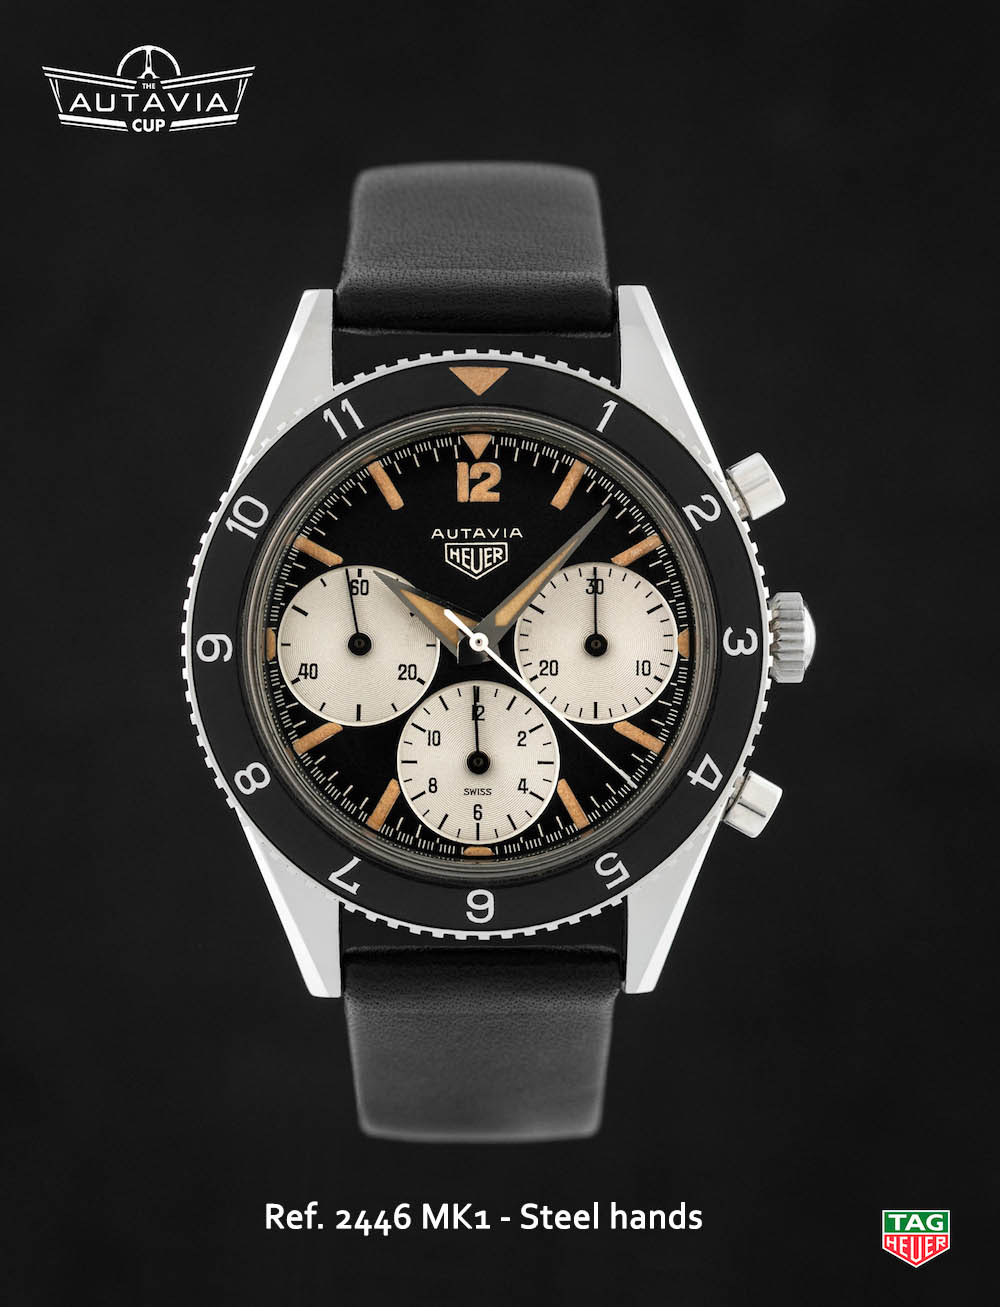 TAG Heuer Autavia - The Autavia Cup - 05-2446-Mk1-Steel